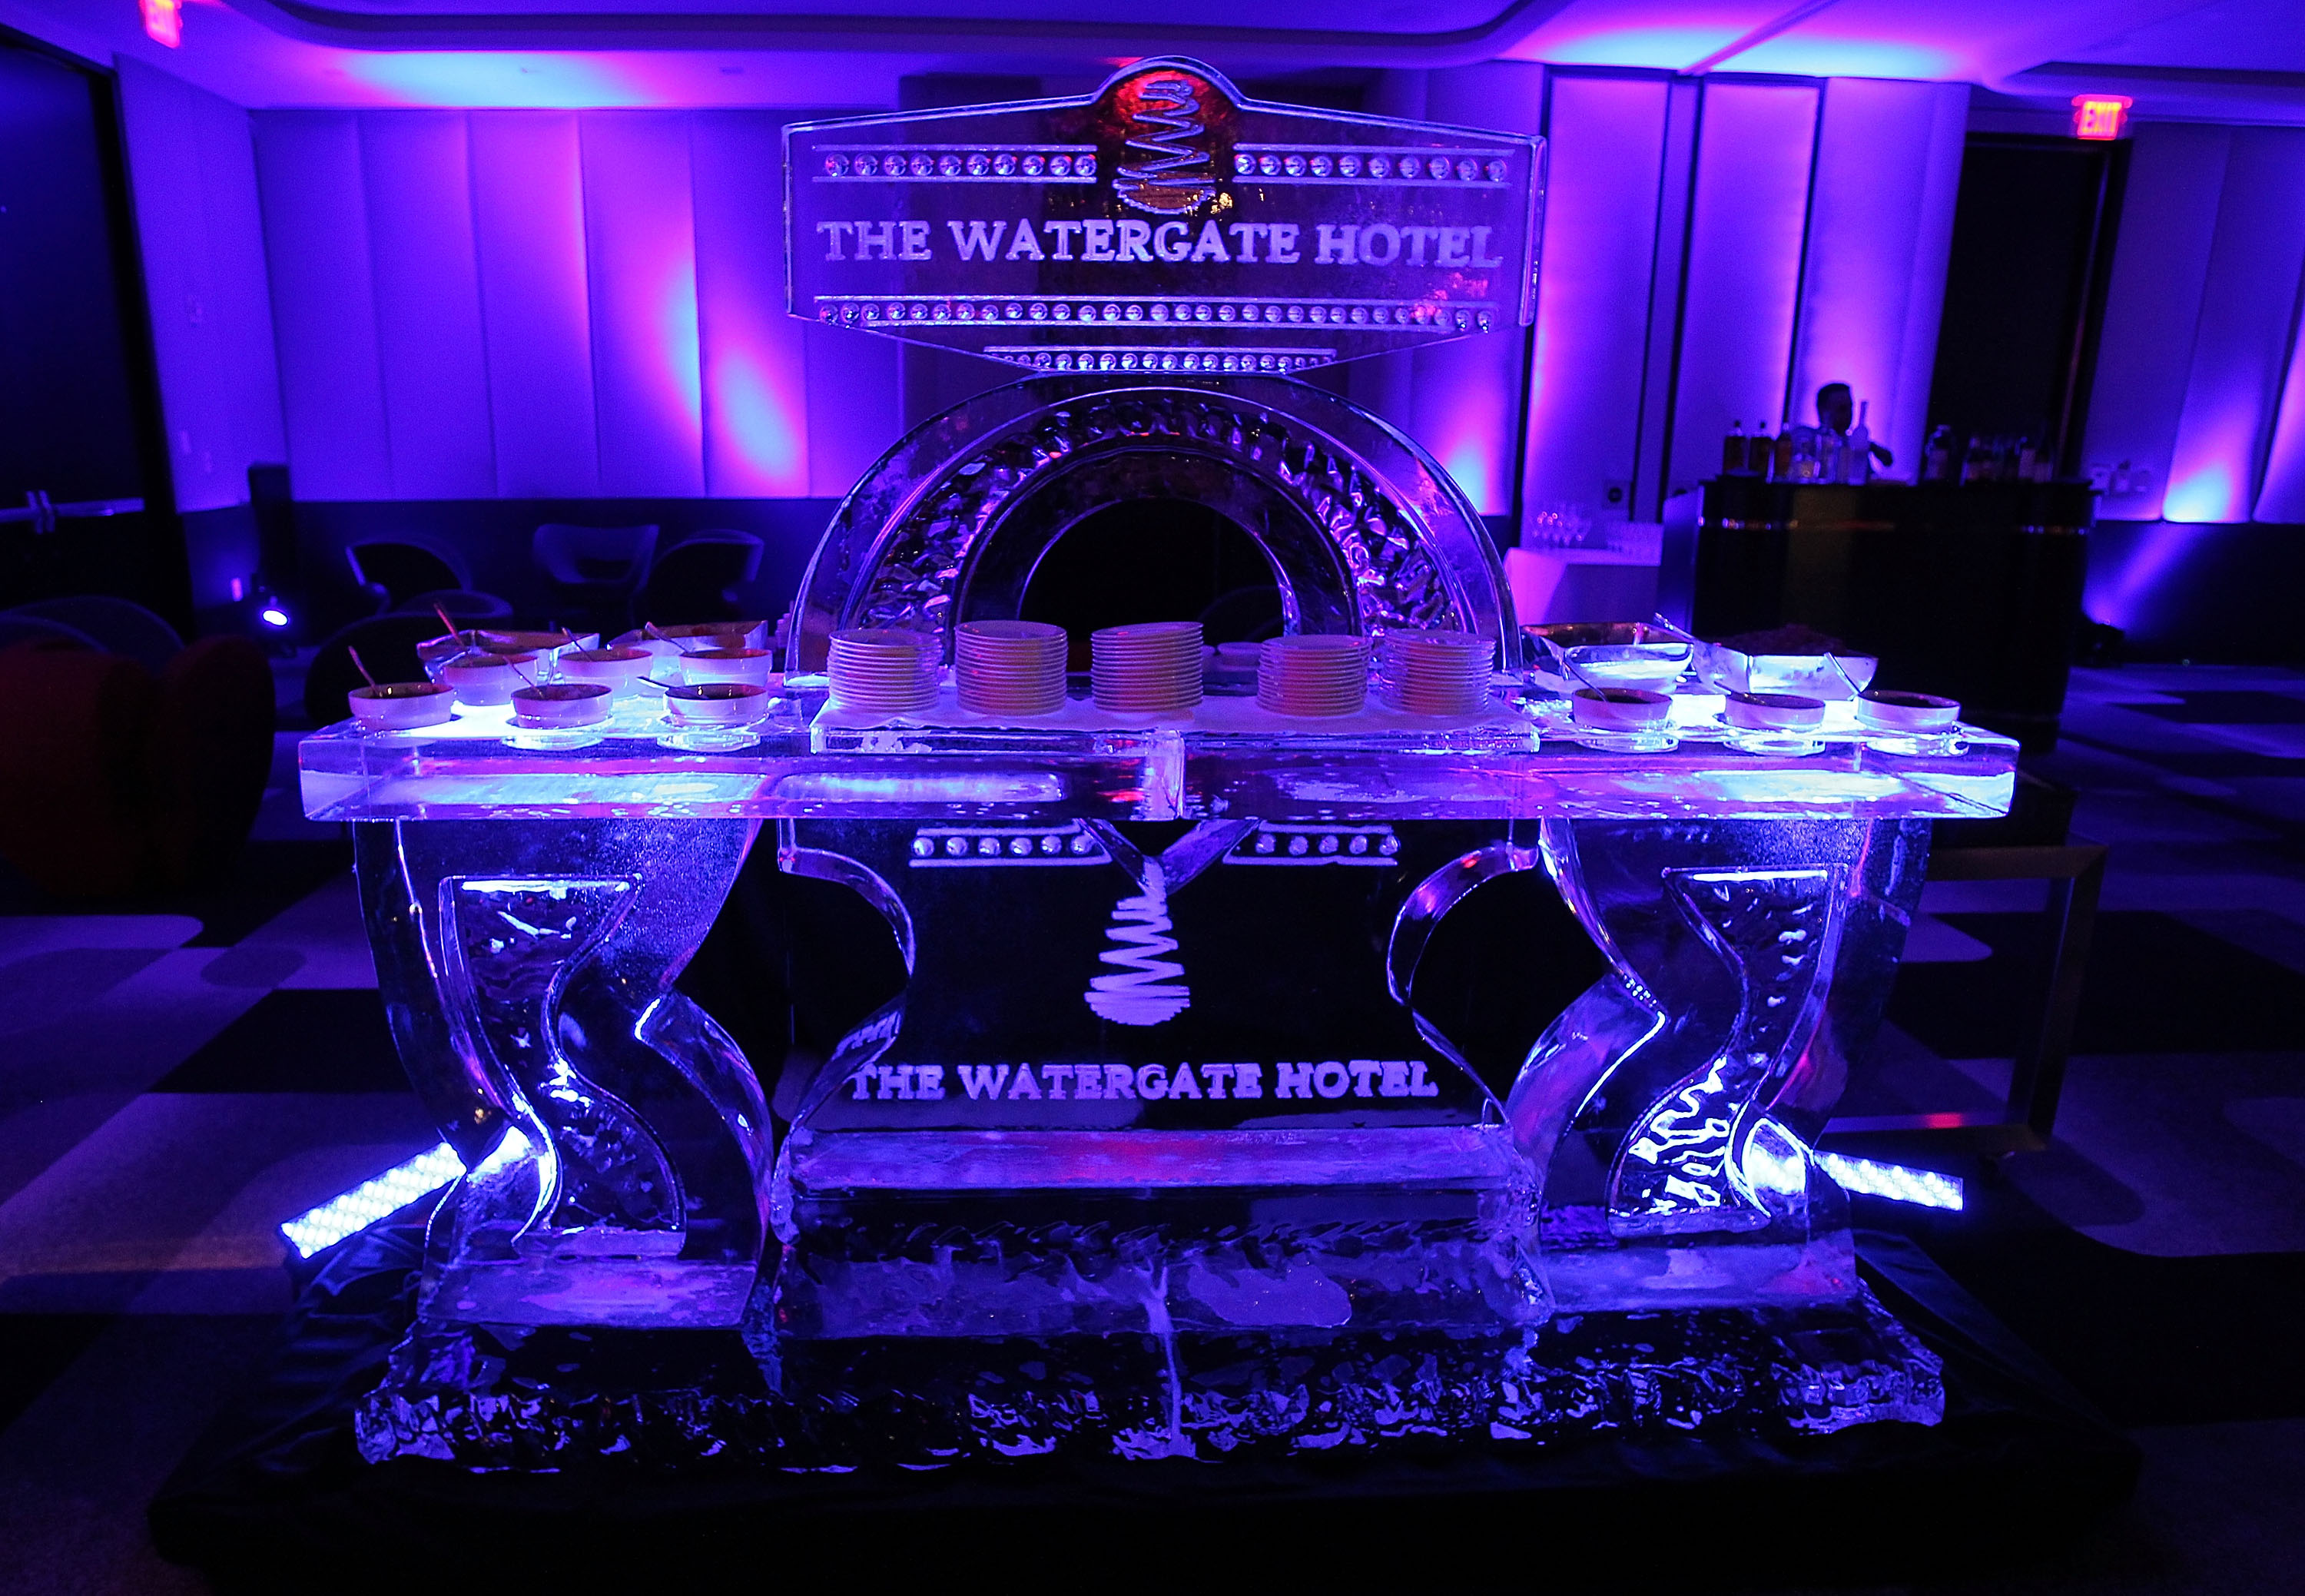 WASHINGTON, DC - JUNE 14:  Ice sculpture at the grand reopening party of the iconic Watergate Hotel on June 14, 2016 in Washington, DC.  (Photo by Paul Morigi/Getty Images for The Watergate Hotel)